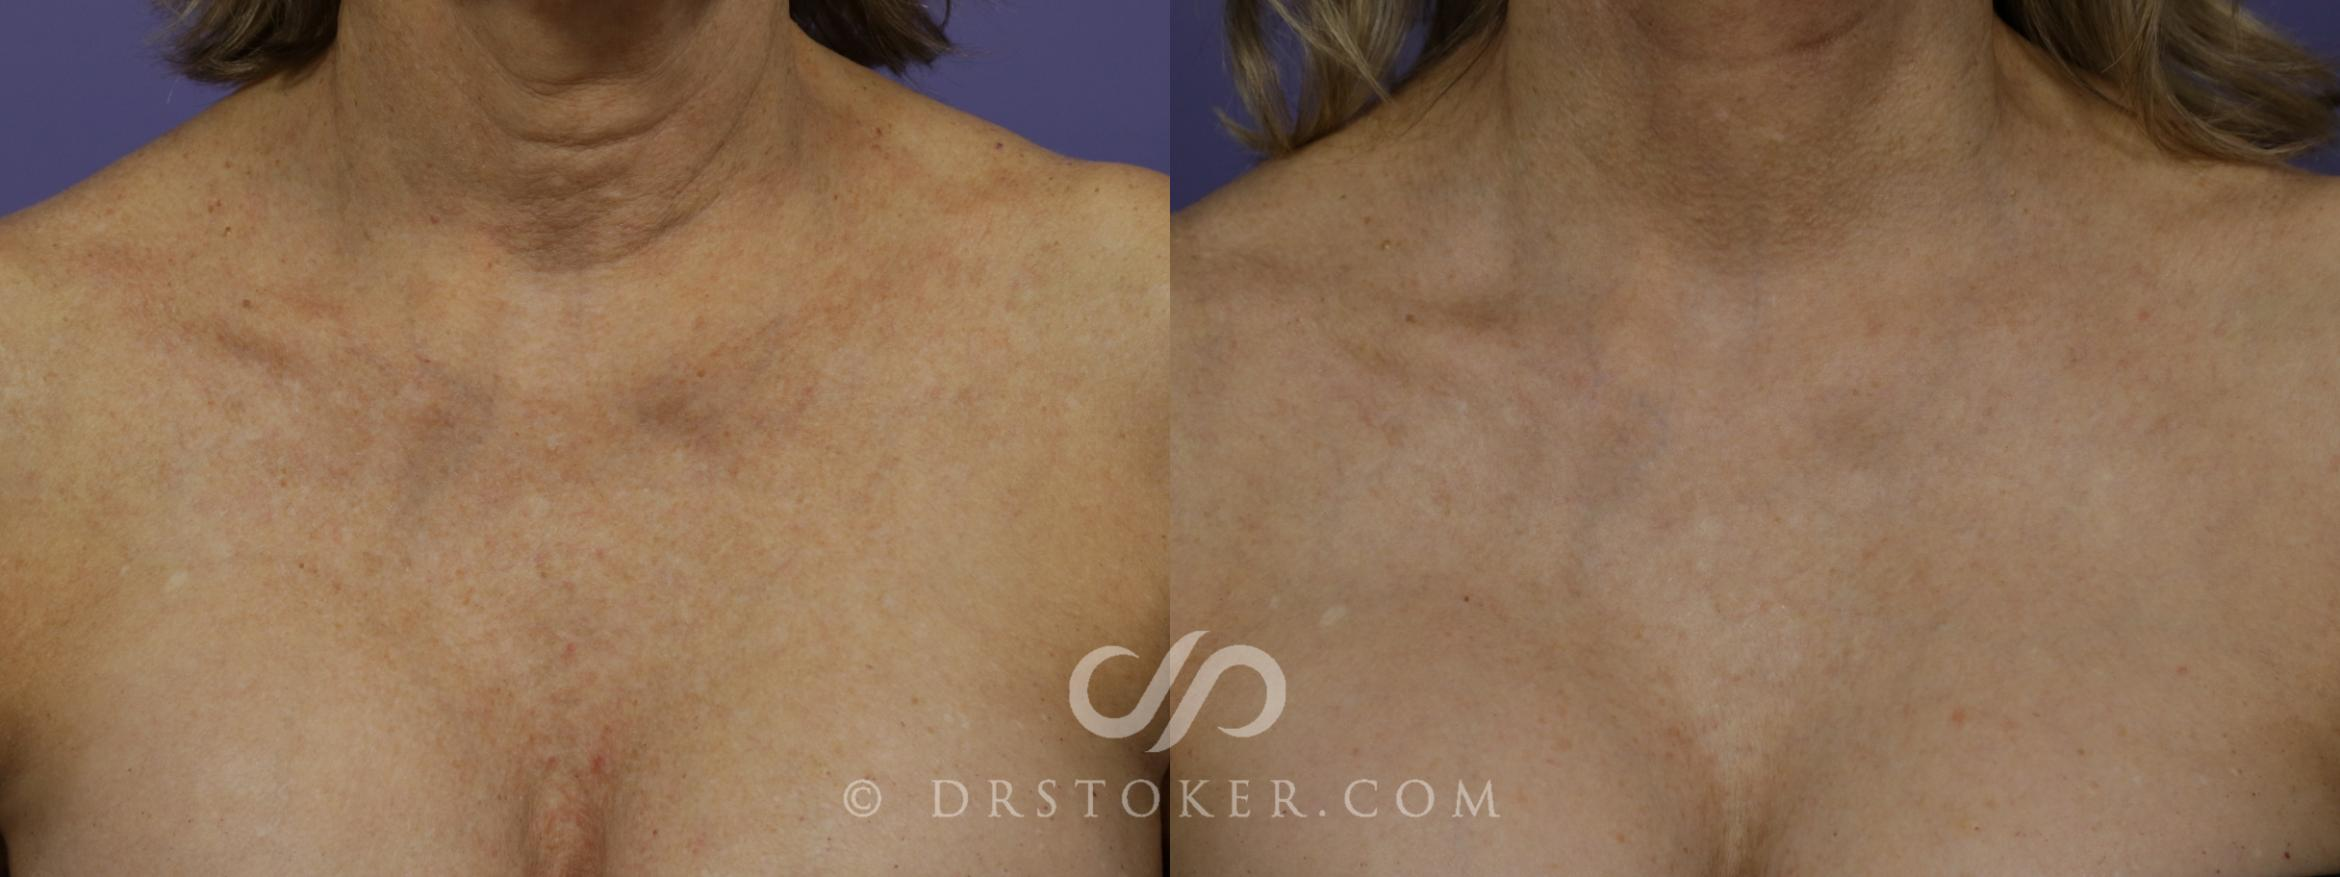 Laser Resurfacing Chest Case 1442 Before & After View #1 | Marina del Rey, CA | Dr. David Stoker